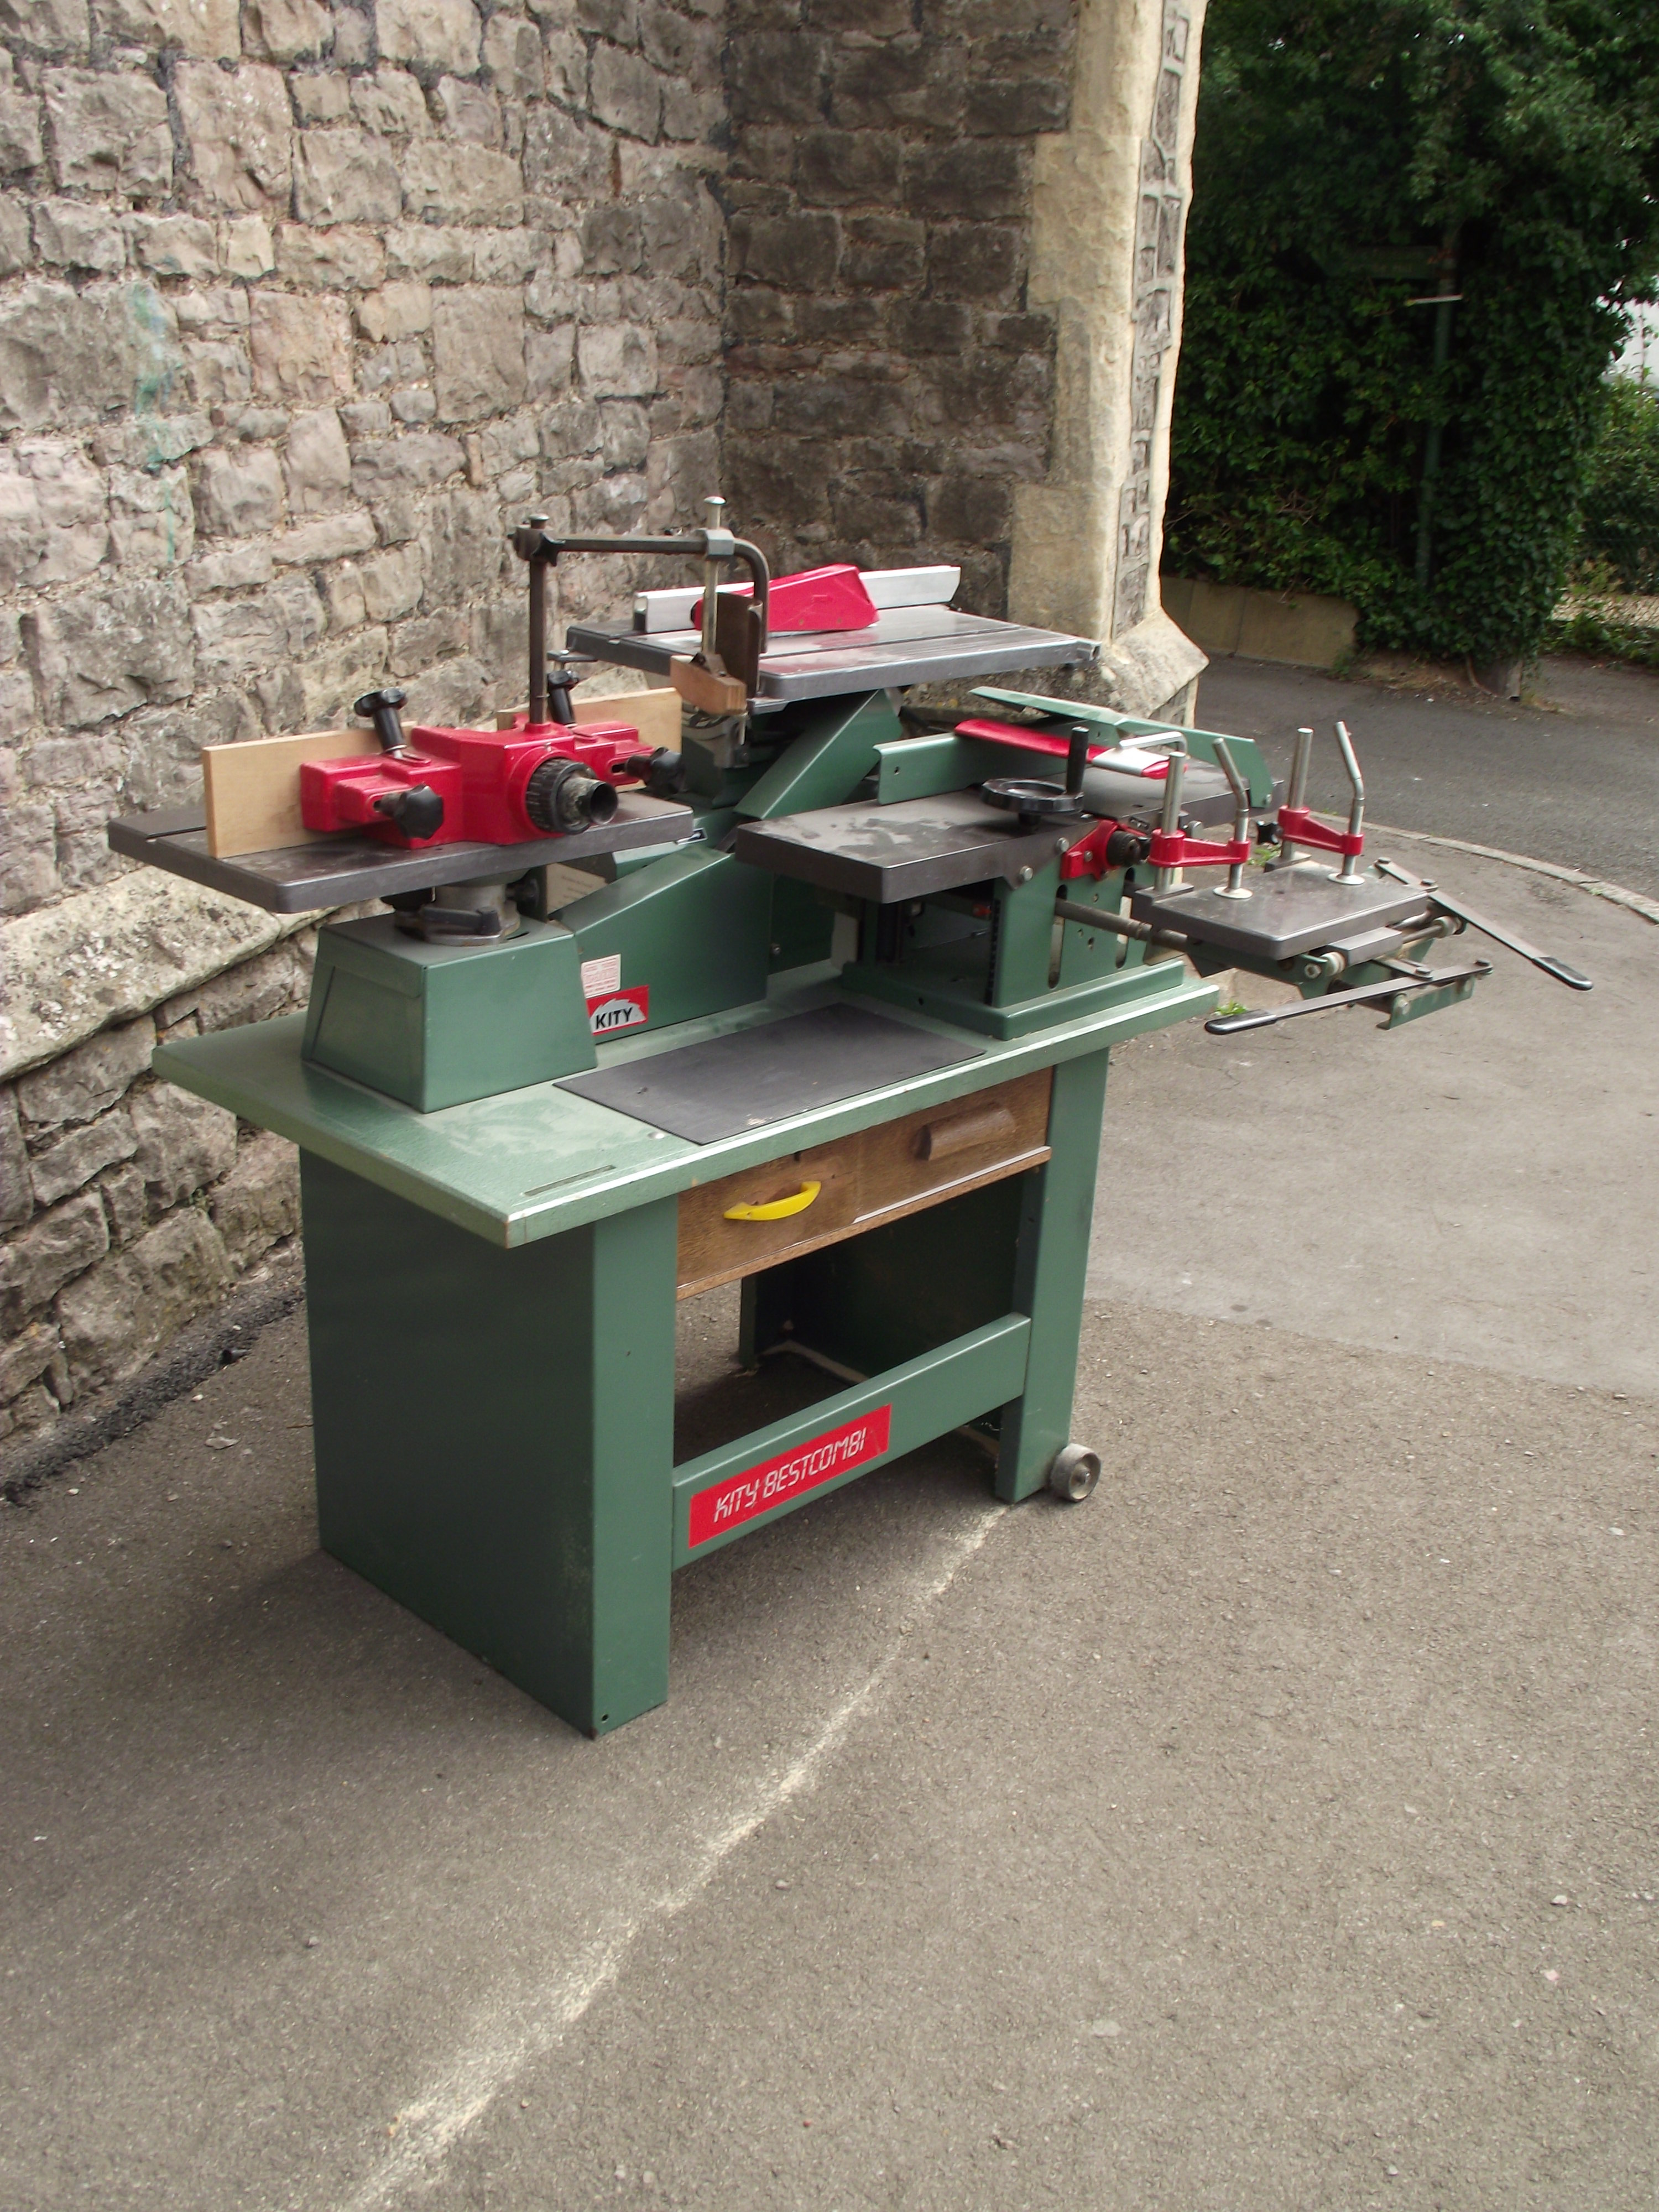 A contemporary workshop multi woodworking machine, Kity BestCombi, with spindle moulder, morticer - Image 2 of 5